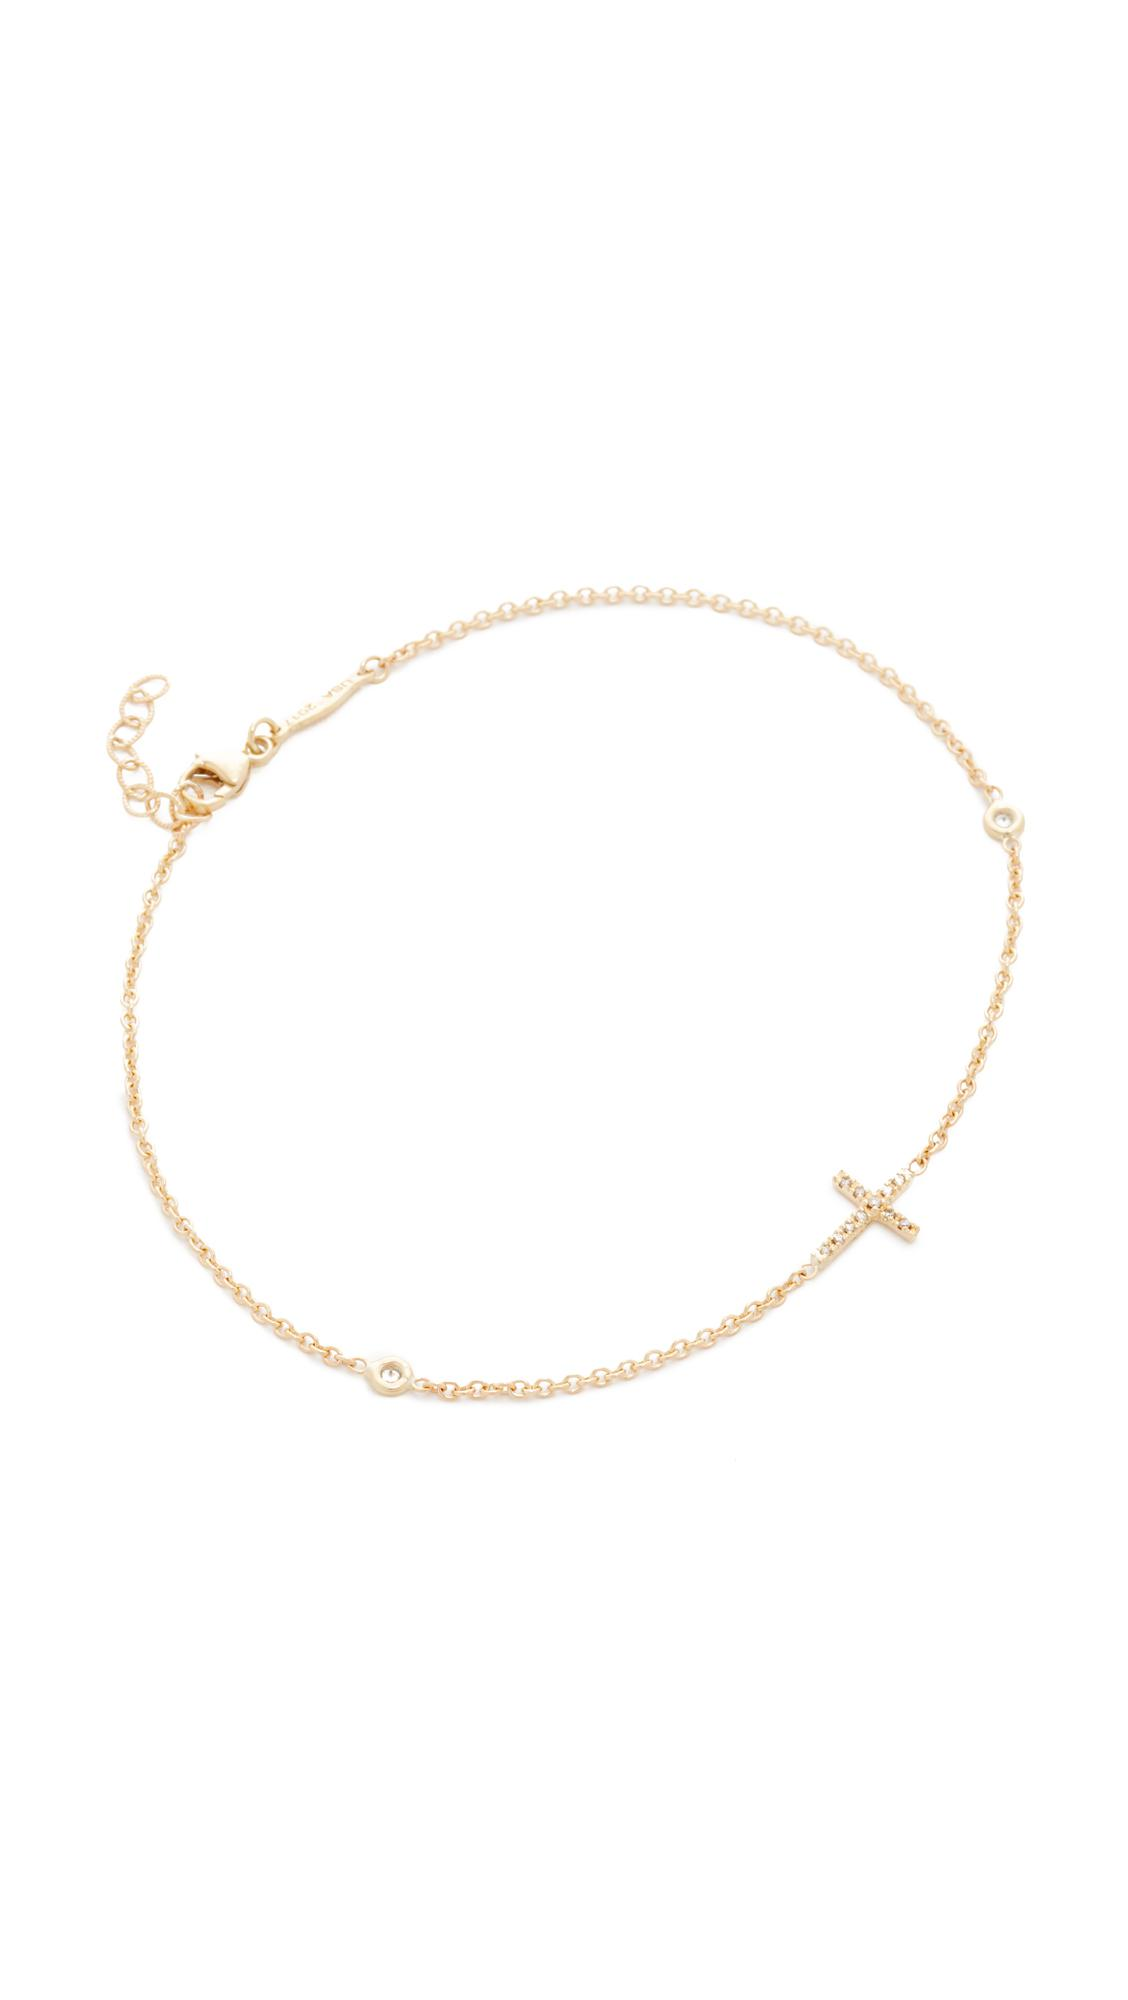 14-karat Rose Gold Diamond Anklet - one size Jacquie Aiche Pp73vJv